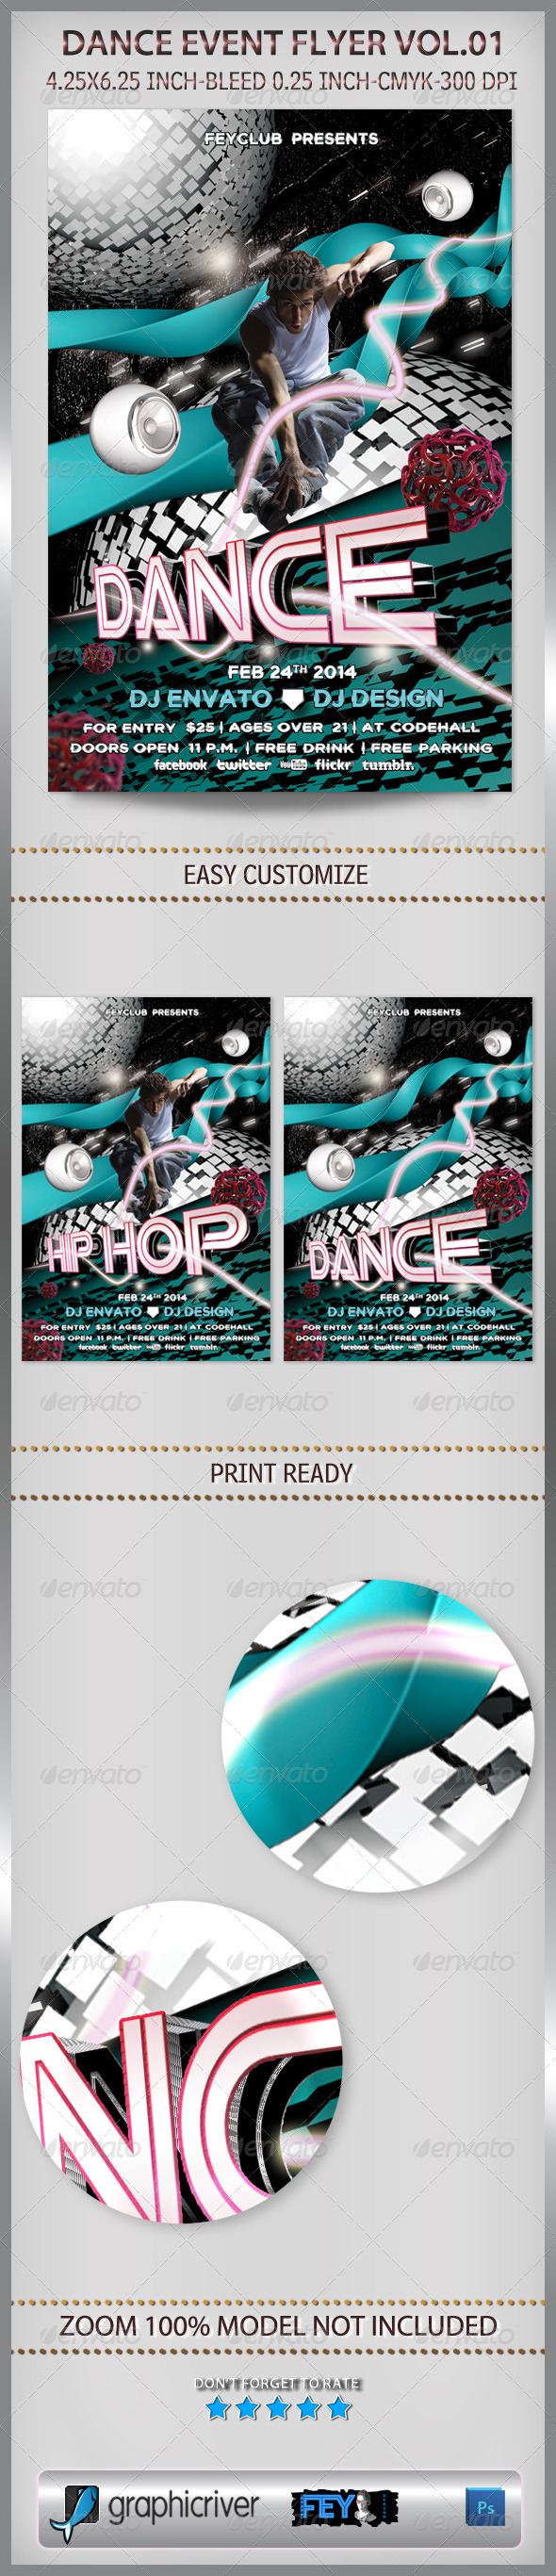 GraphicRiver Dance Event Flyer Vol.01 6681051